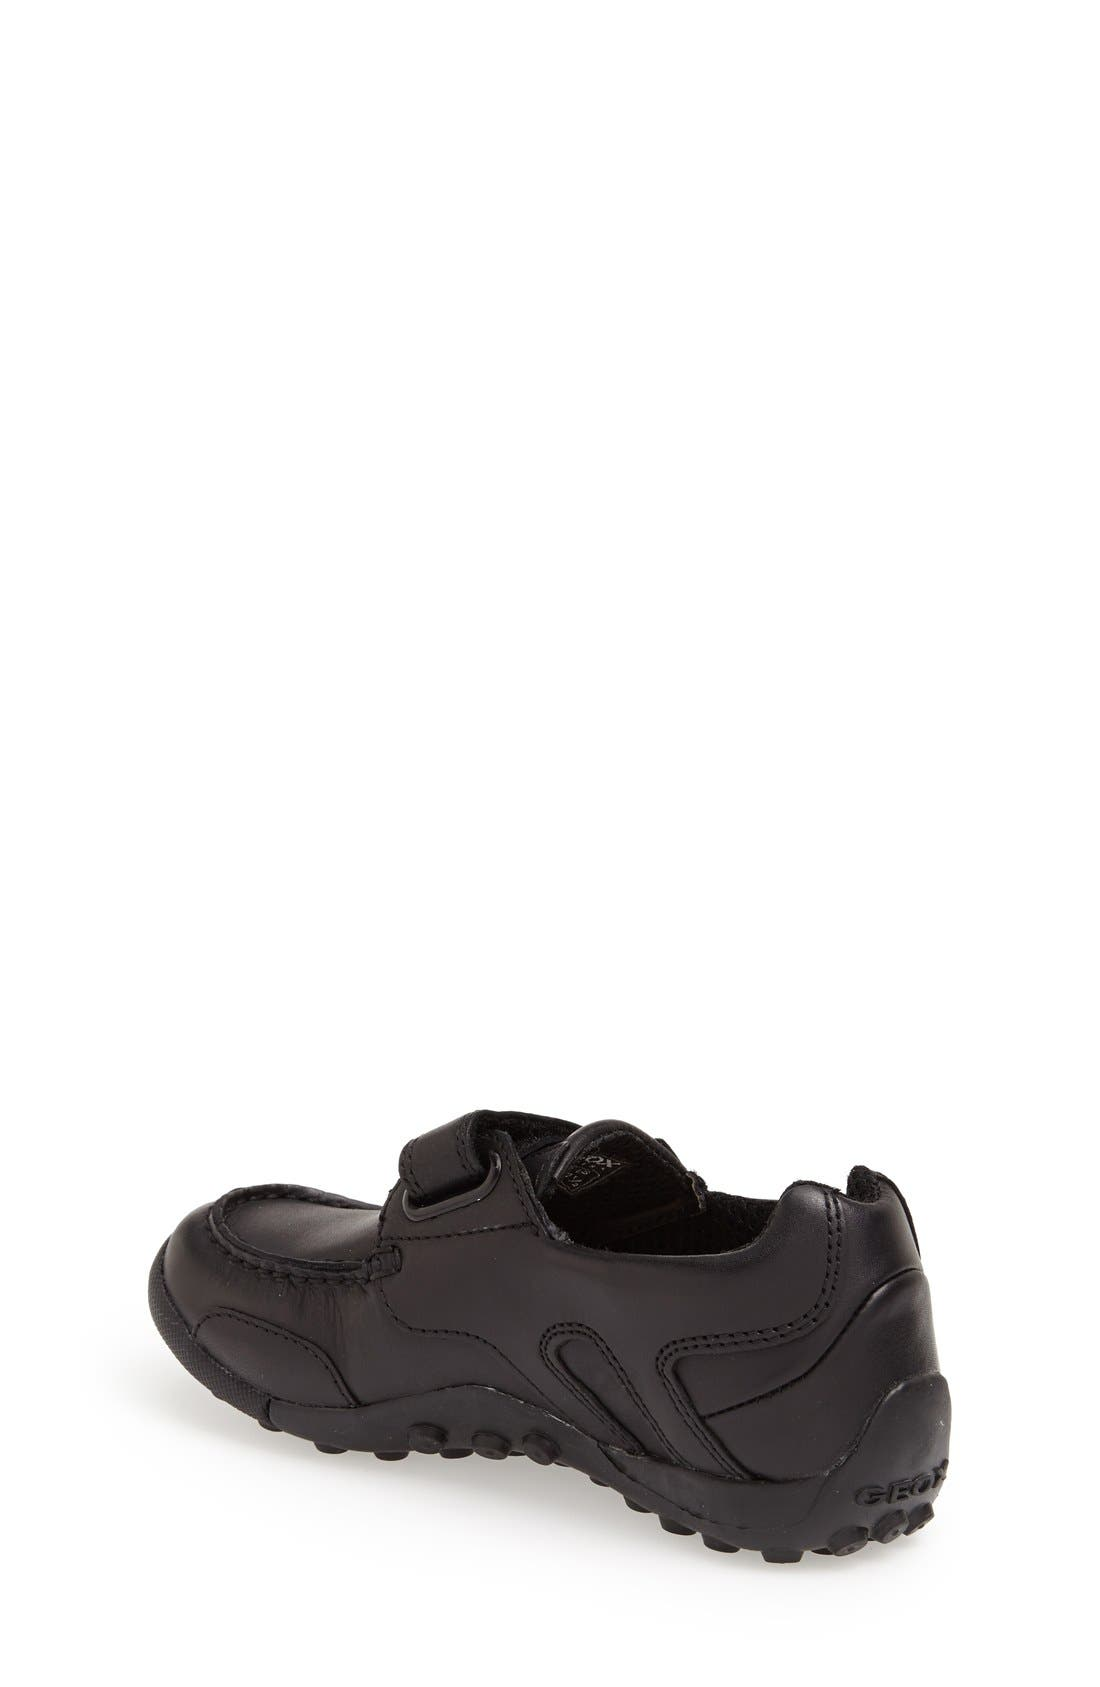 Alternate Image 2  - Geox 'Snake Moc 2' Leather Loafer (Toddler, Little Kid & Big Kid)